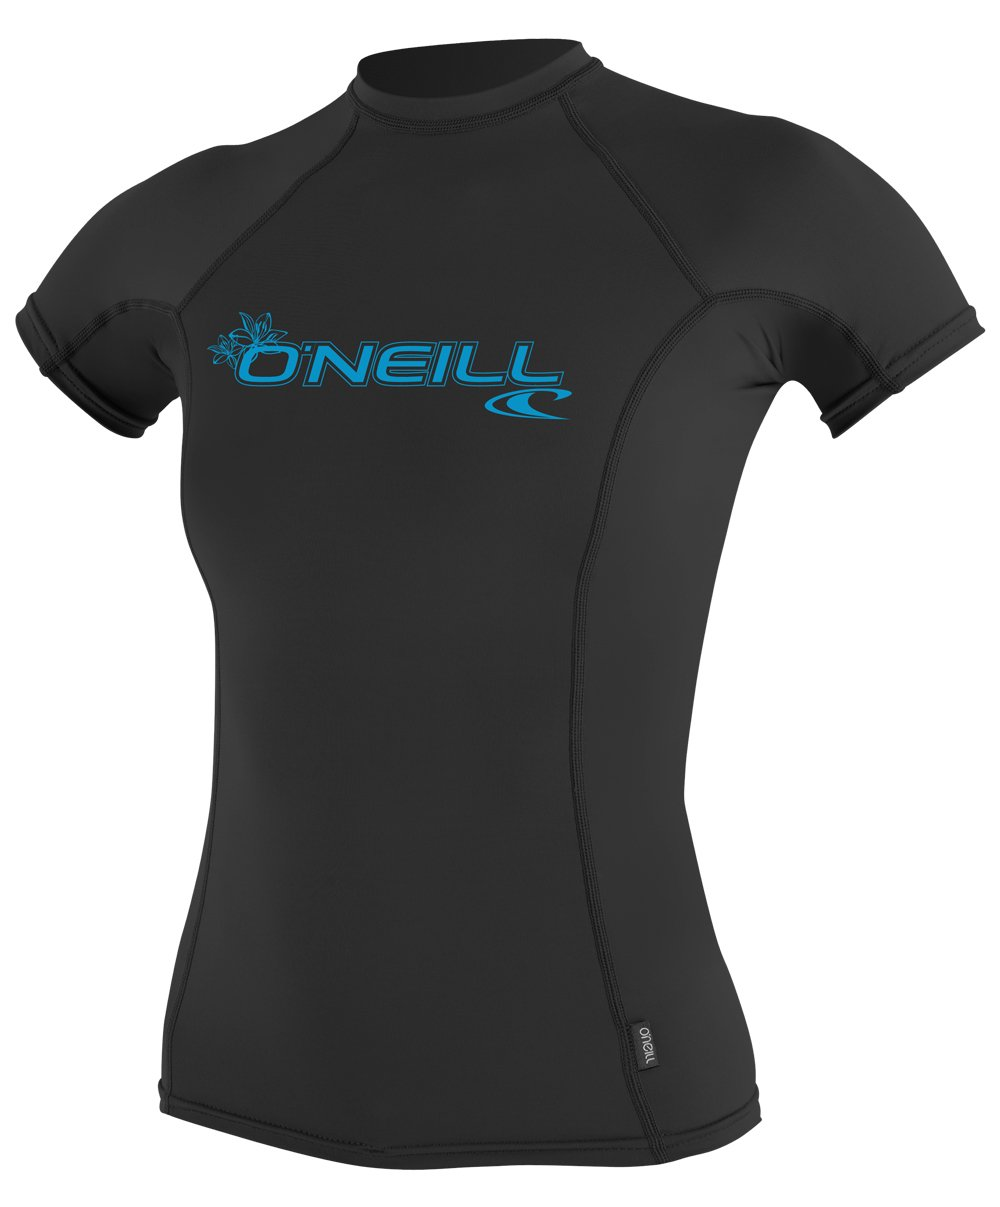 O'Neill Womens Basic Skins S/S Crew Wetsuit Oneill